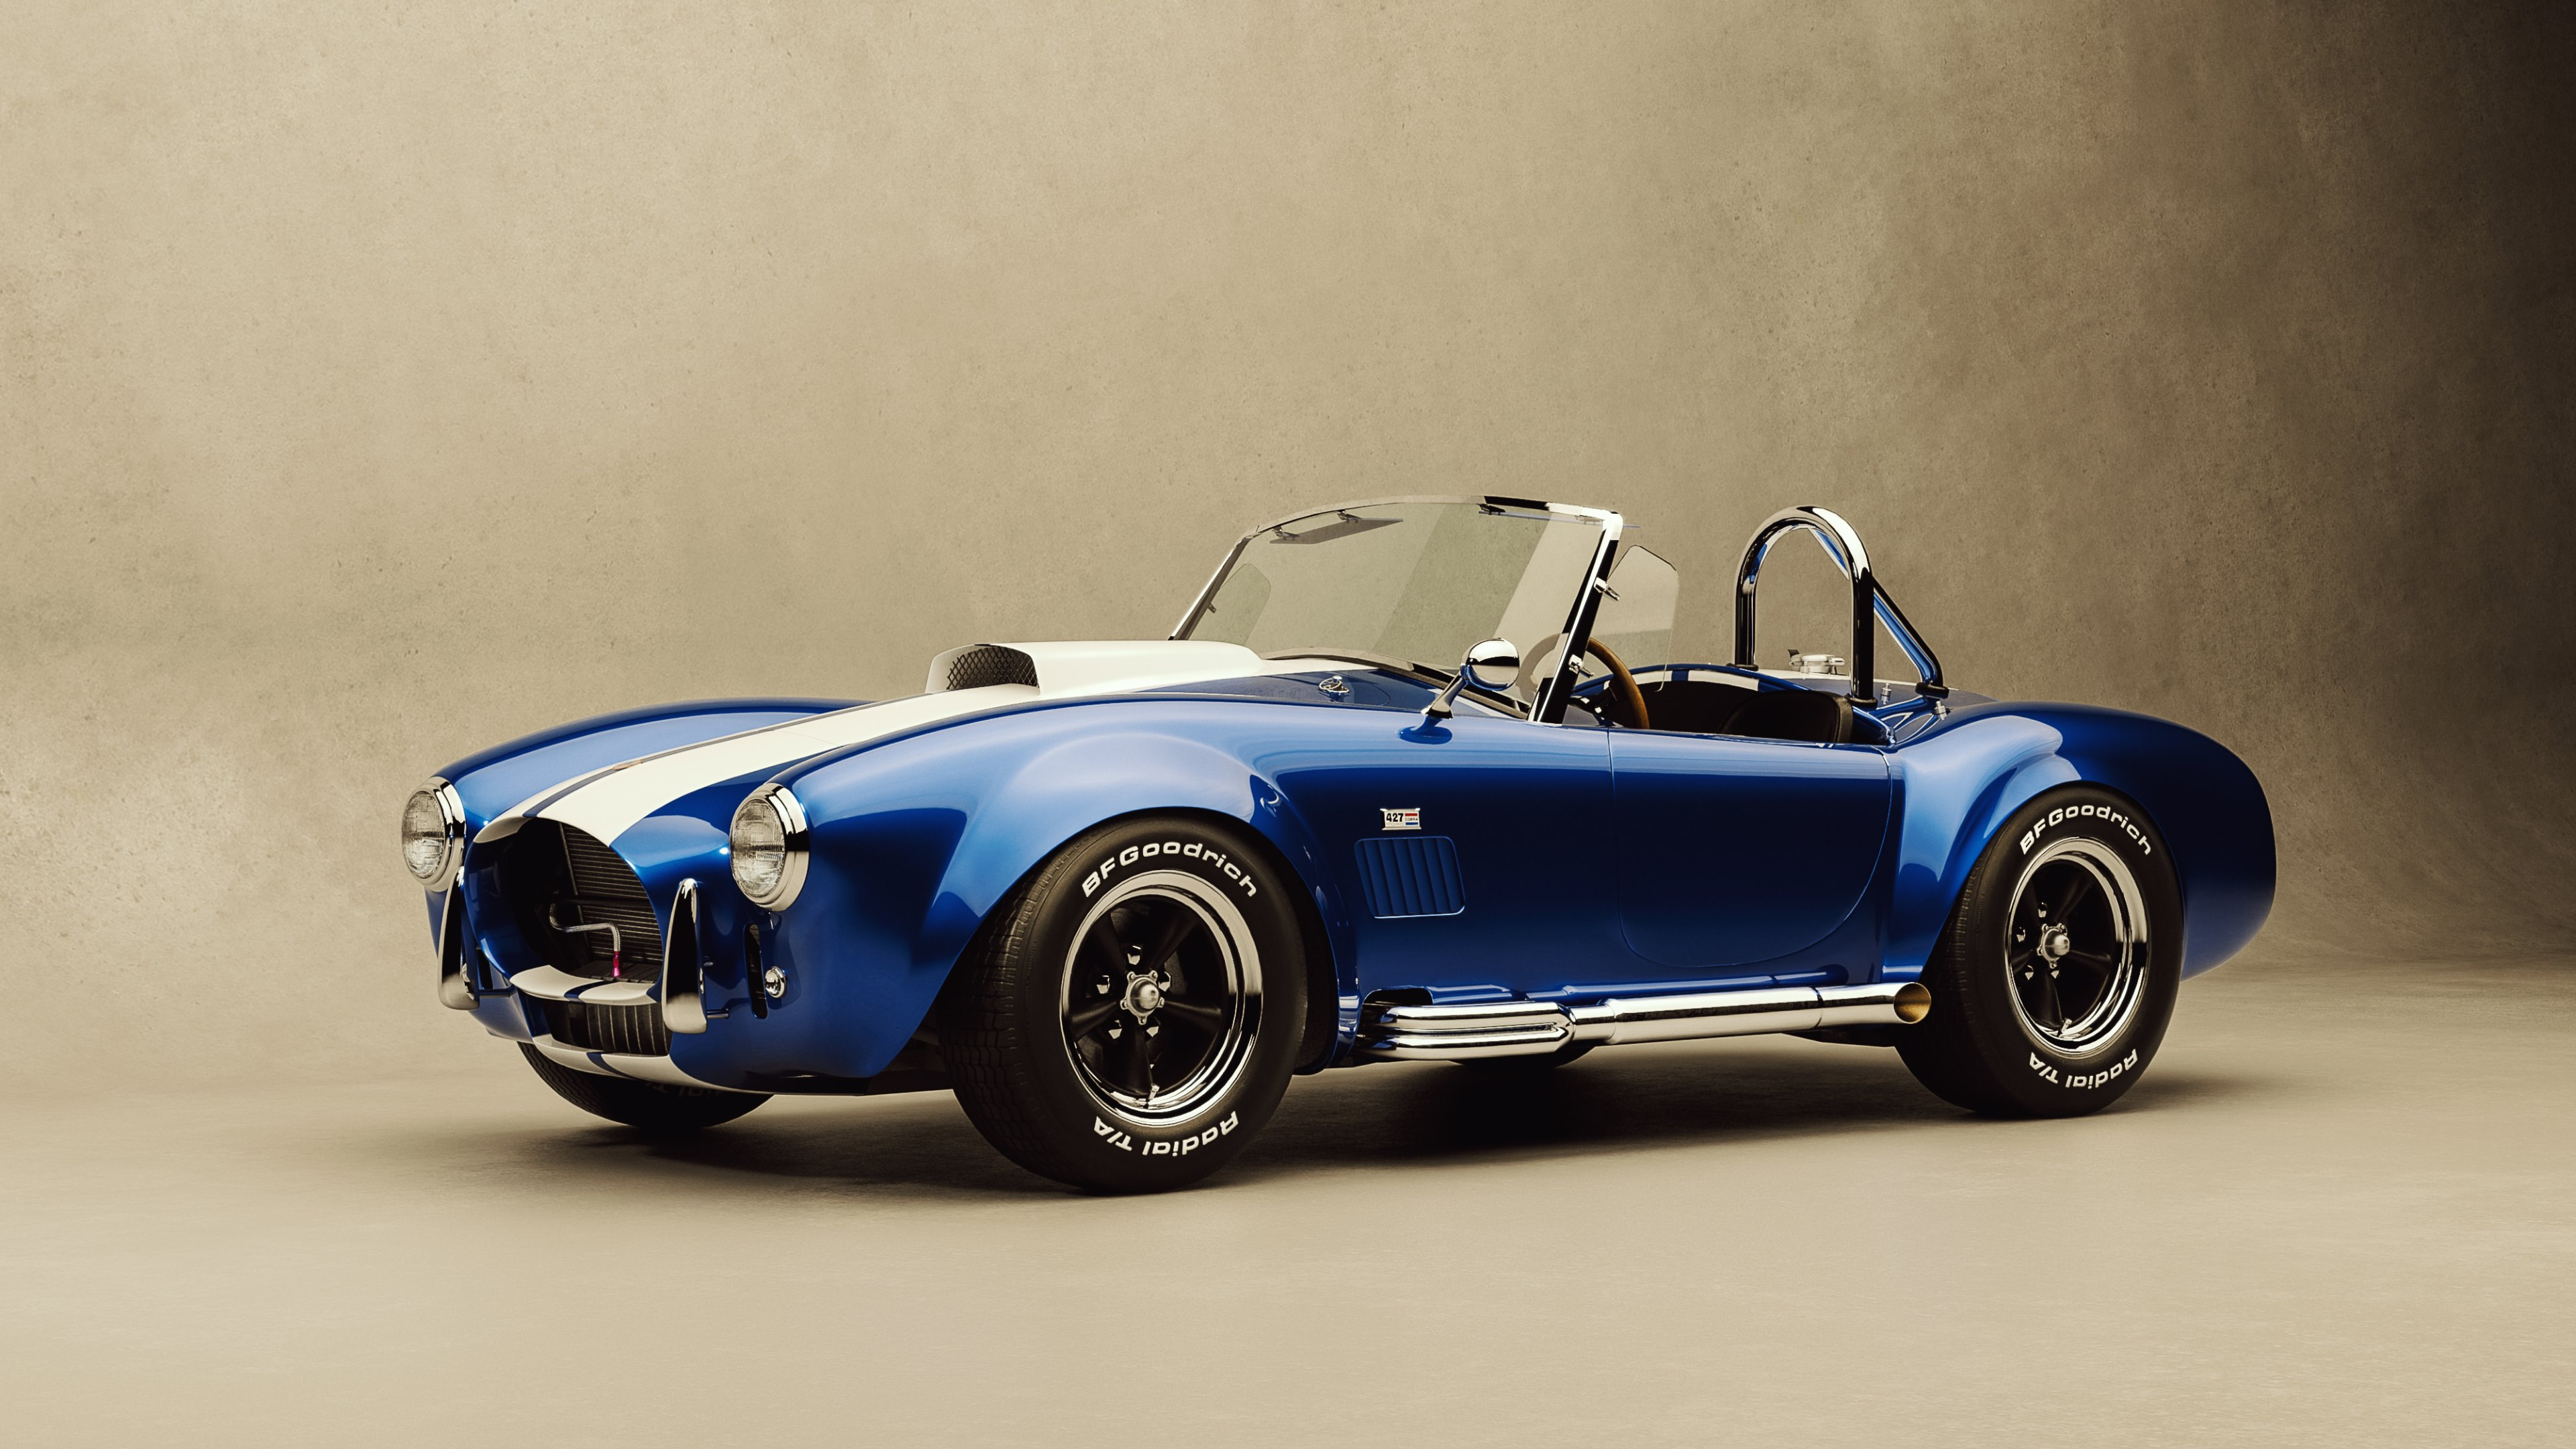 Hd volkswagen wallpaper 1366x768 cars background wallpapers hd html - American Car Vintage Ford Shelby Cobra 427 Hd